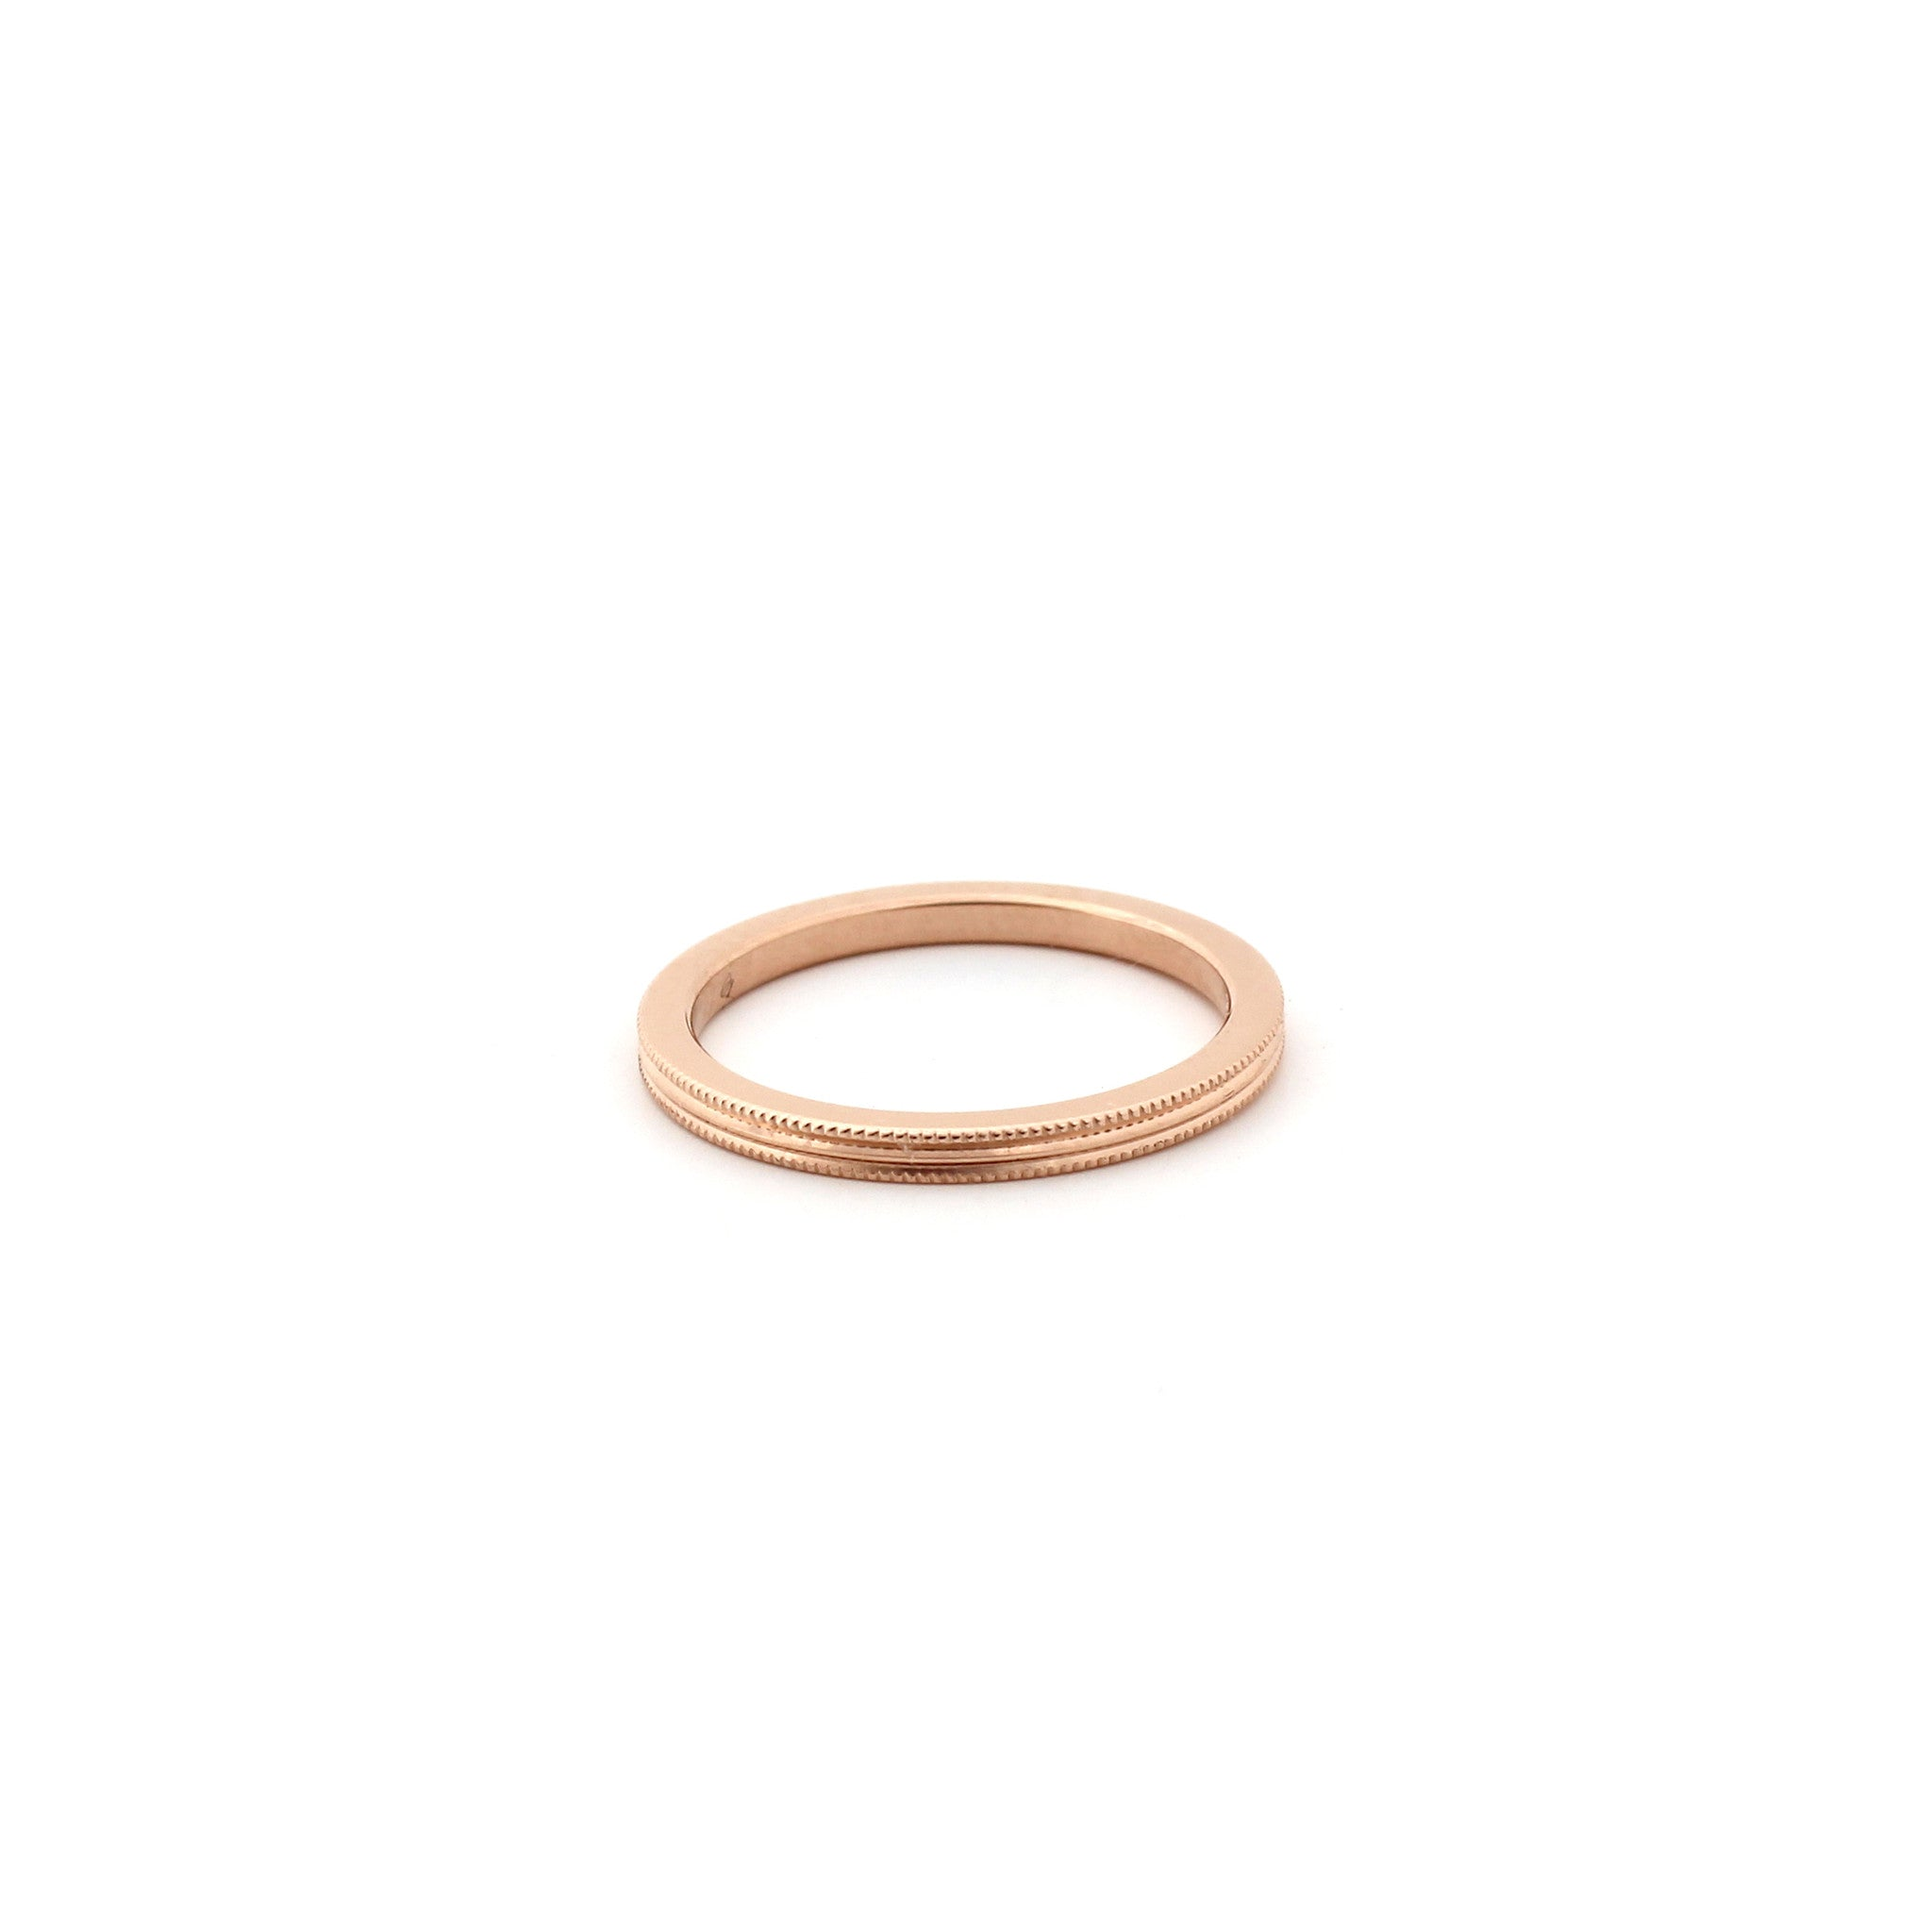 Millegrain Wedding Band - Rose gold